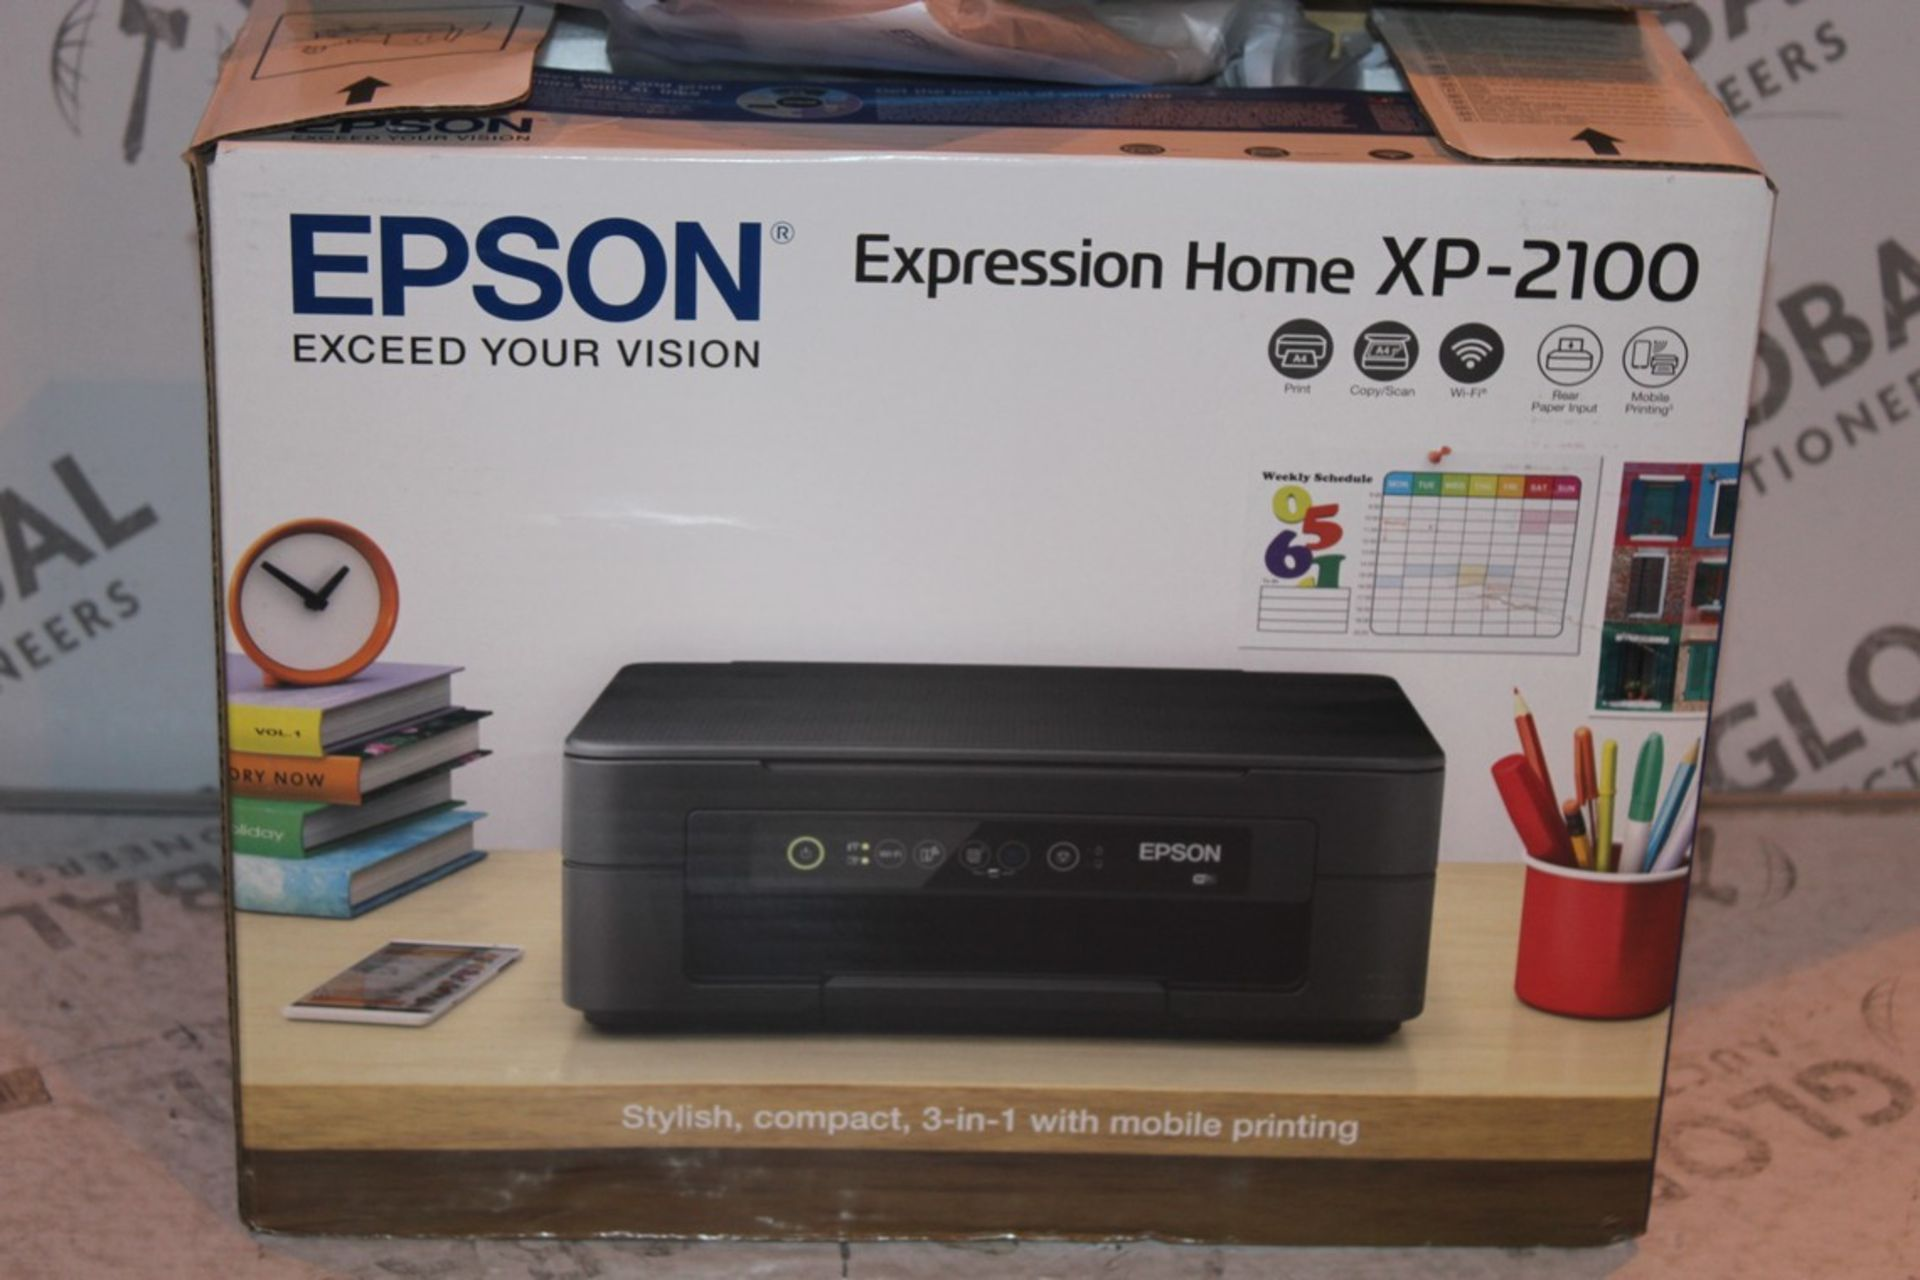 Lot 3 - Boxed Epson Expression Home XP2100 Printer RRP £55 (Public Viewing and Appraisals Available)